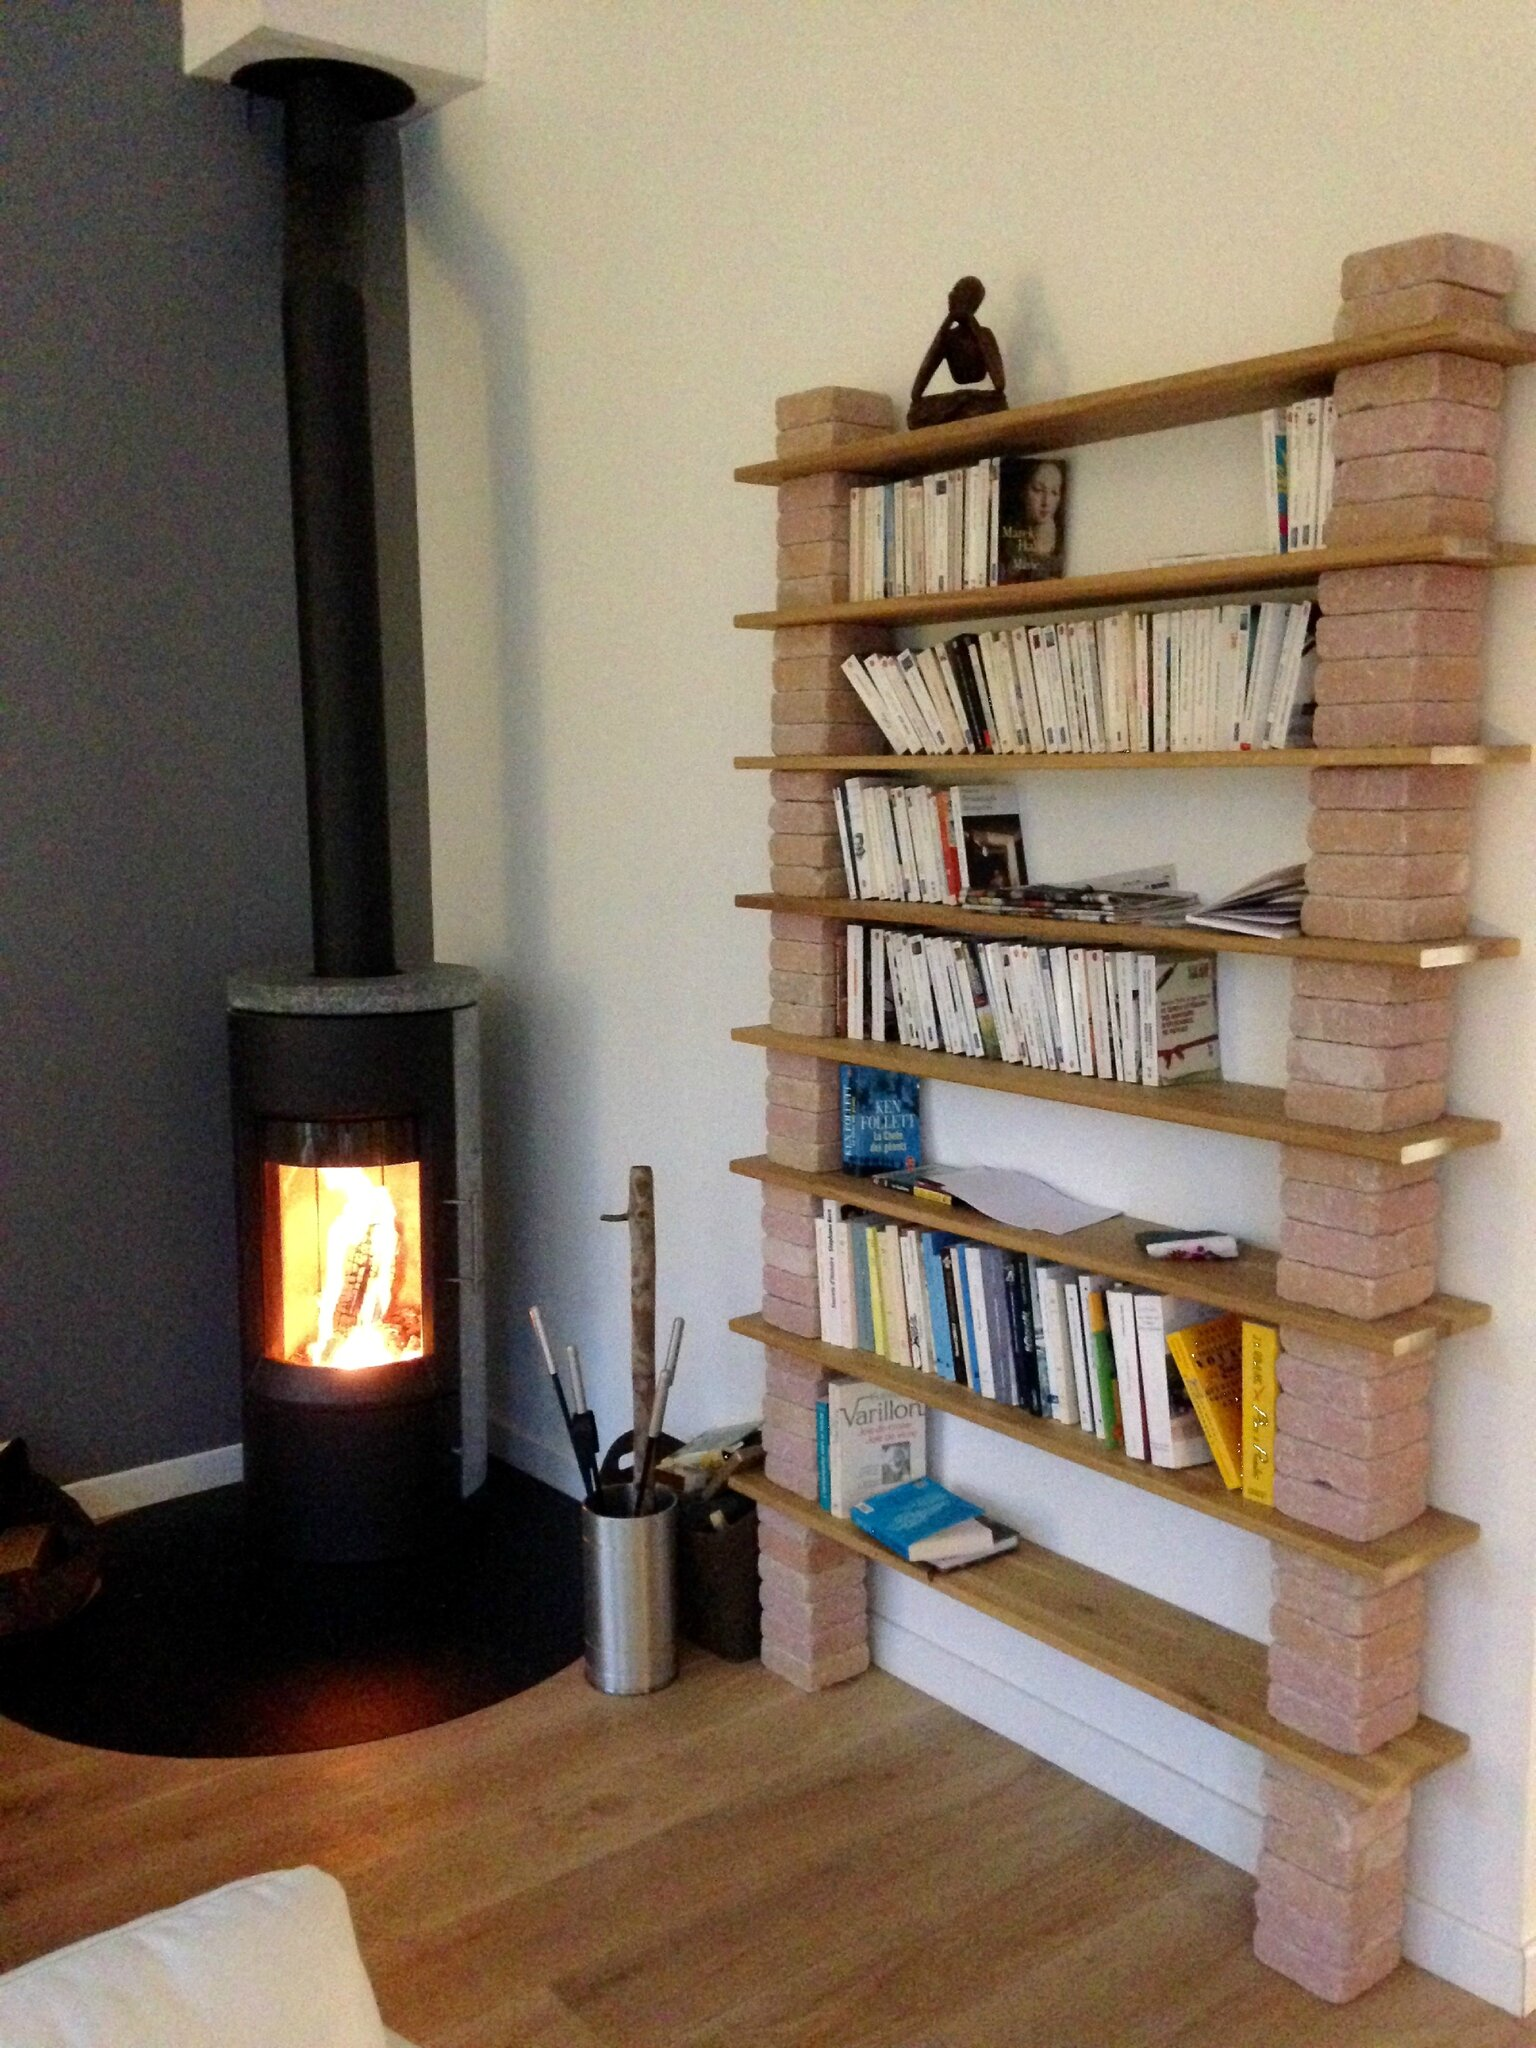 Une biblioth que sur mesure r aliser soi m me home and office design - Faire une etagere en bois ...